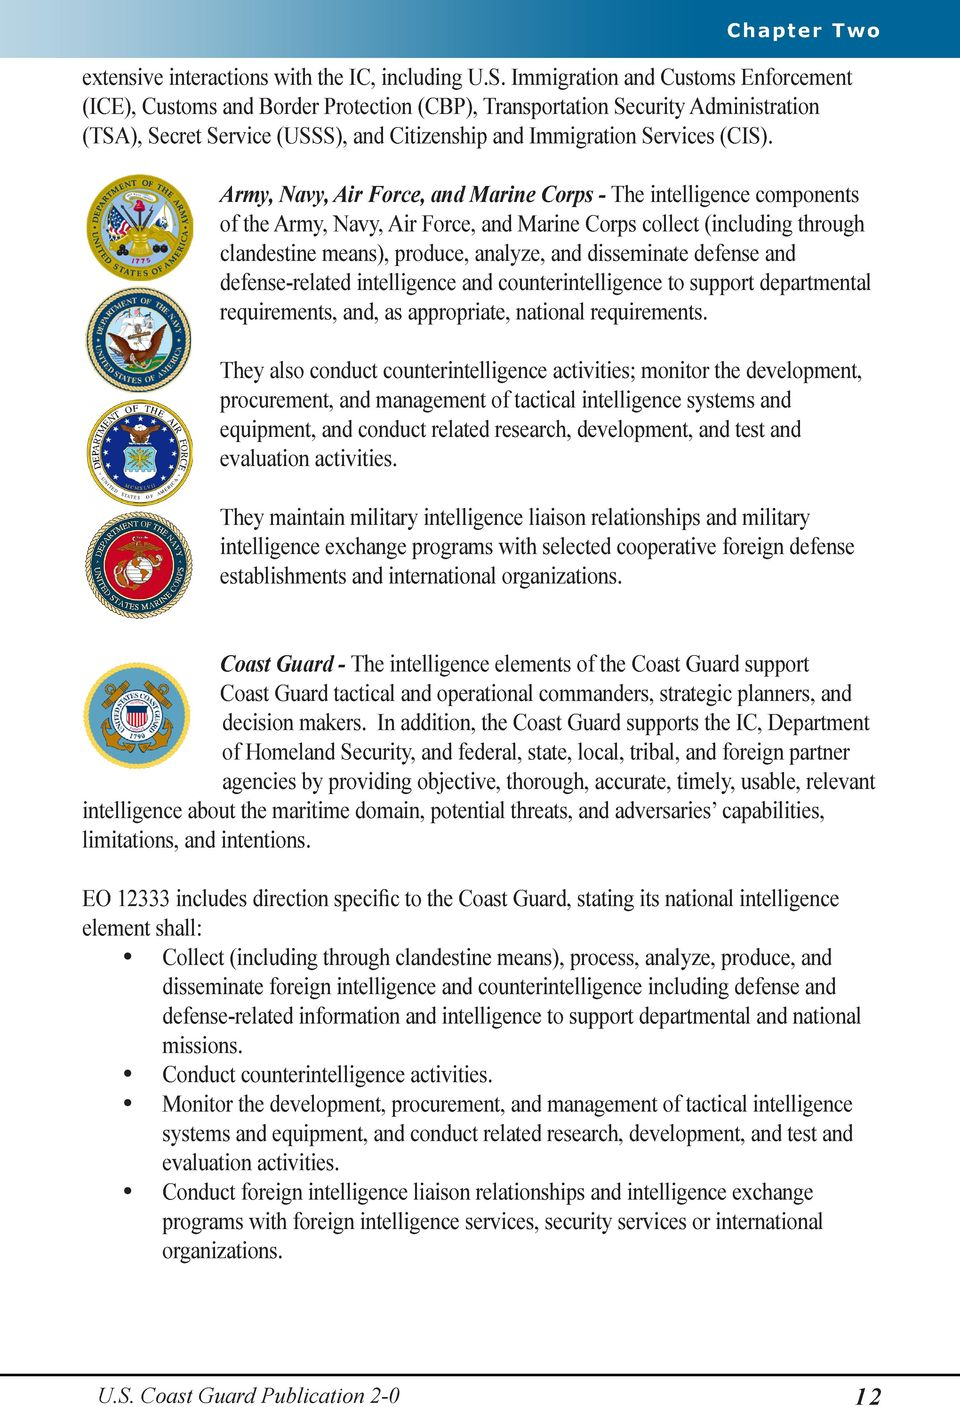 Army, Navy, Air Force, and Marine Corps - The intelligence components of the Army, Navy, Air Force, and Marine Corps collect (including through clandestine means), produce, analyze, and disseminate